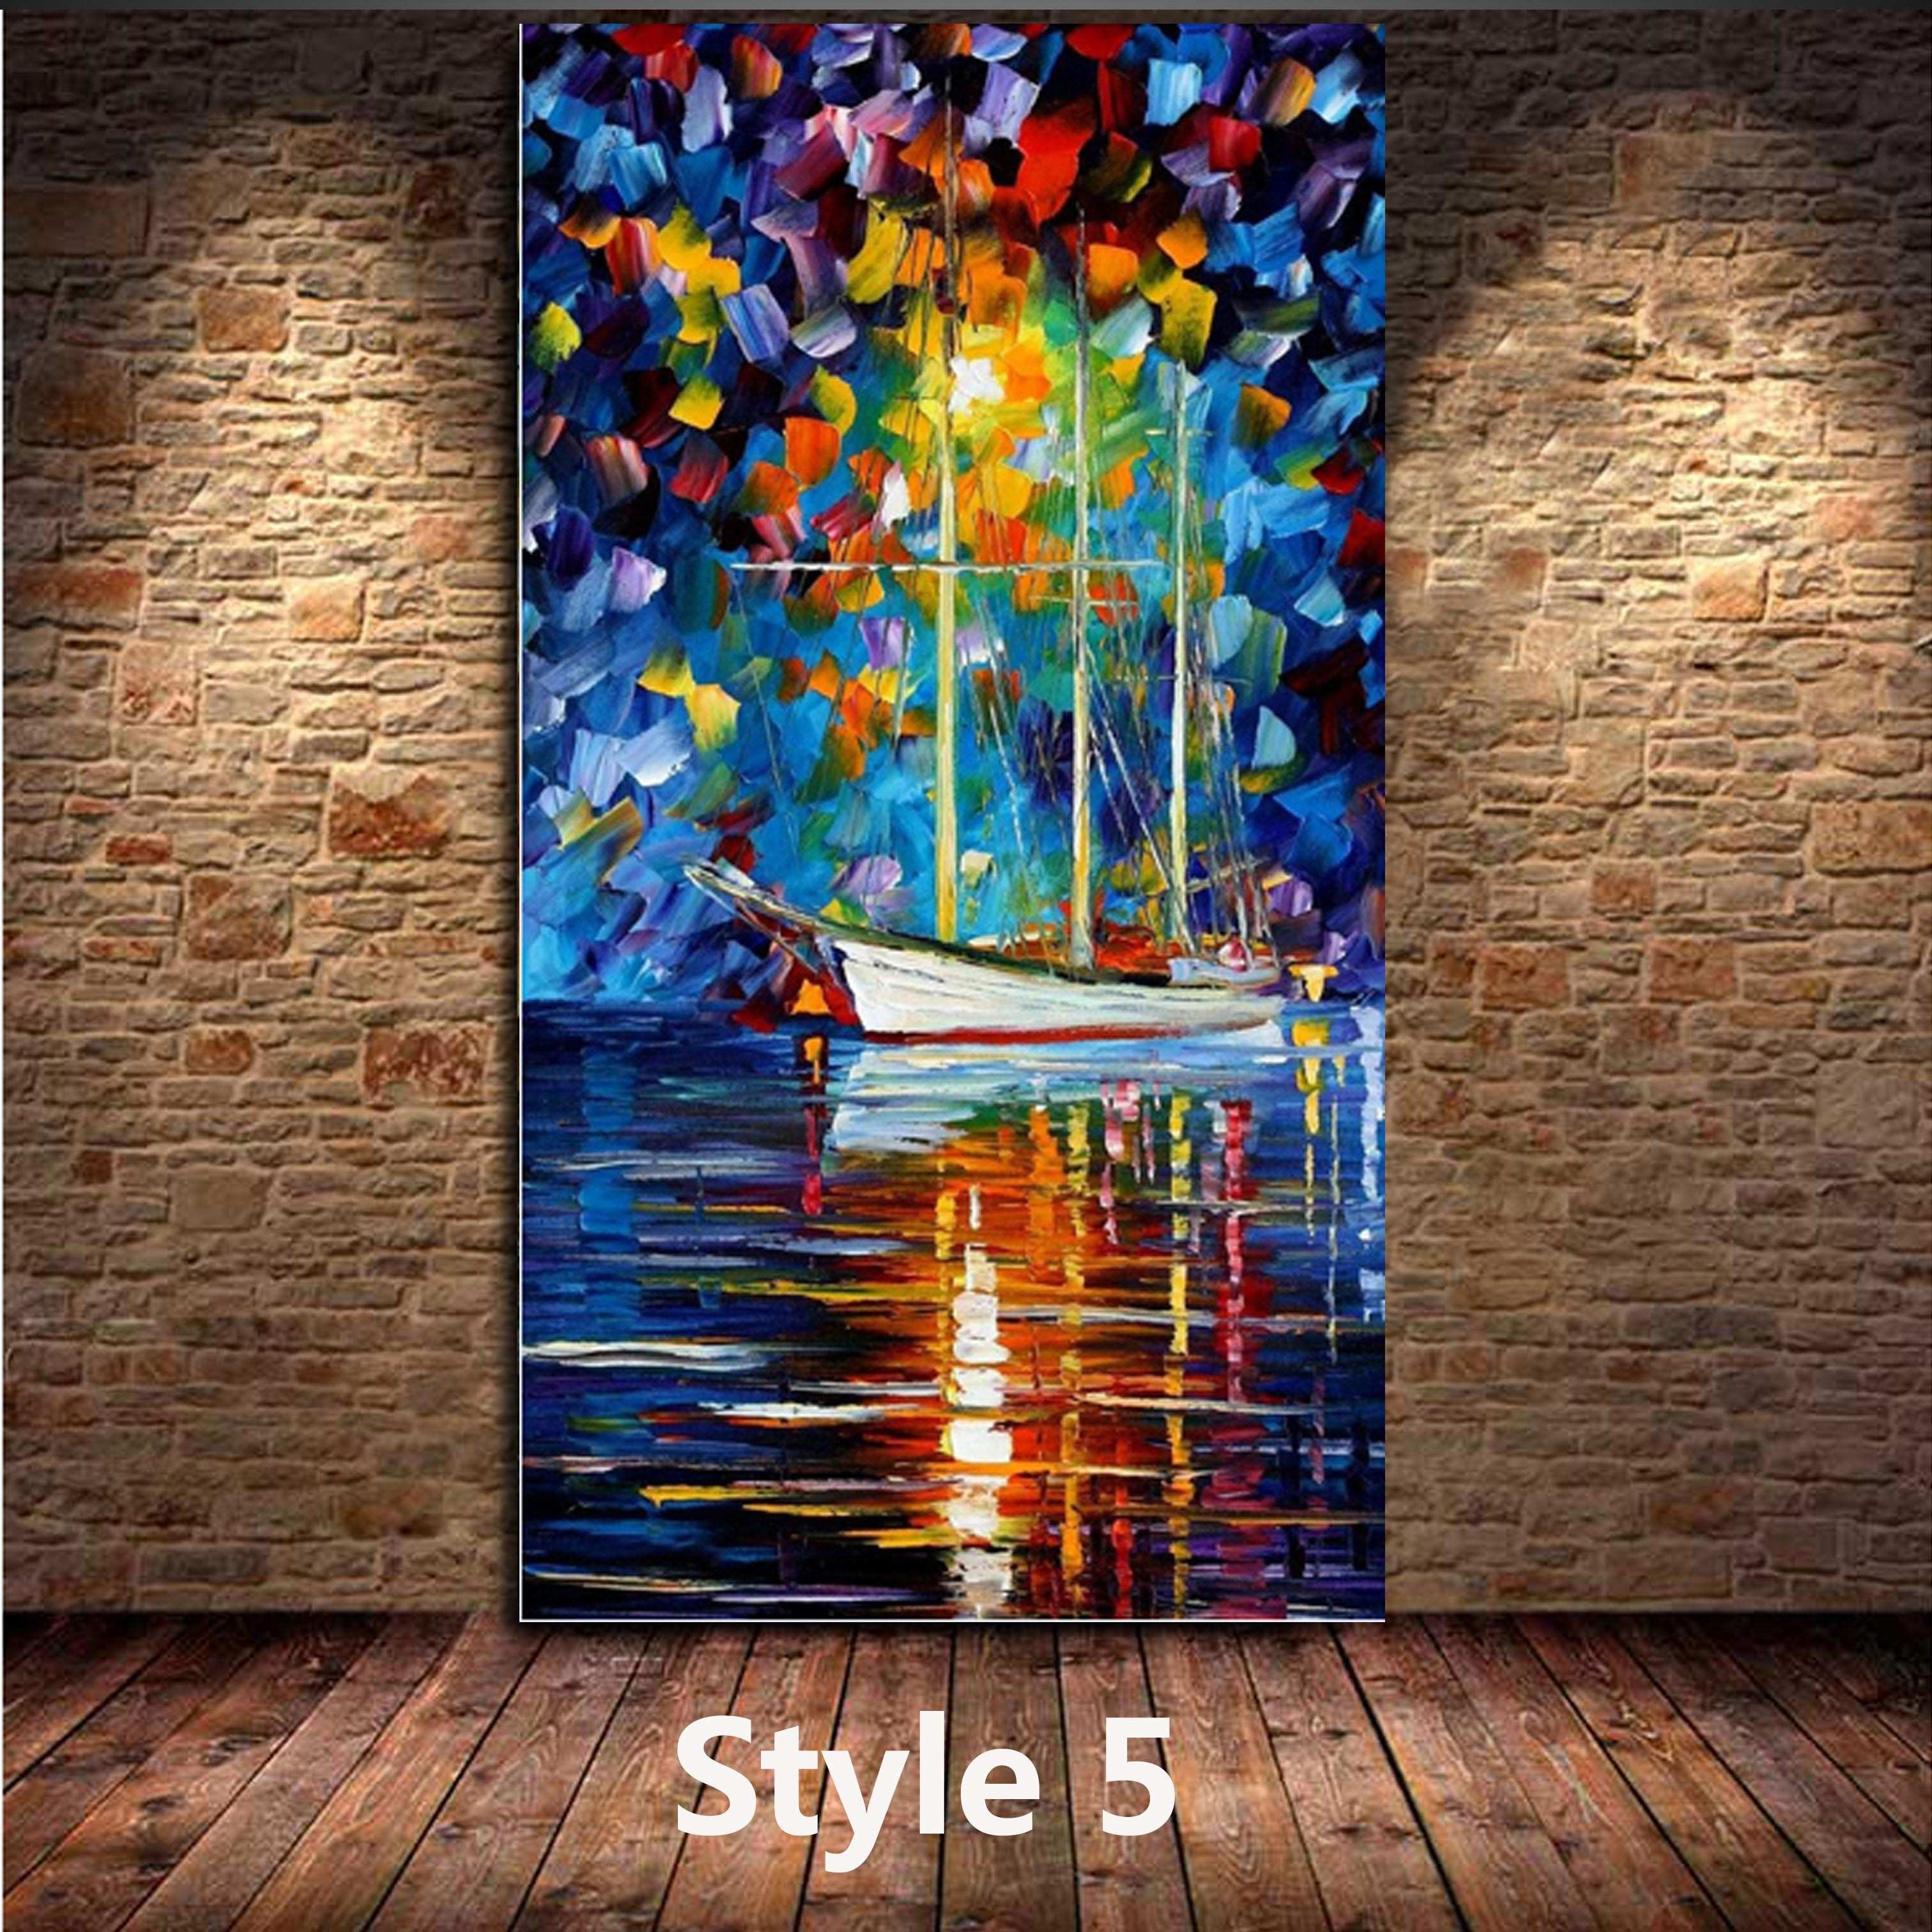 2018 Kg Handmade Acrylic Painting Canvas Art Knife Paintings River